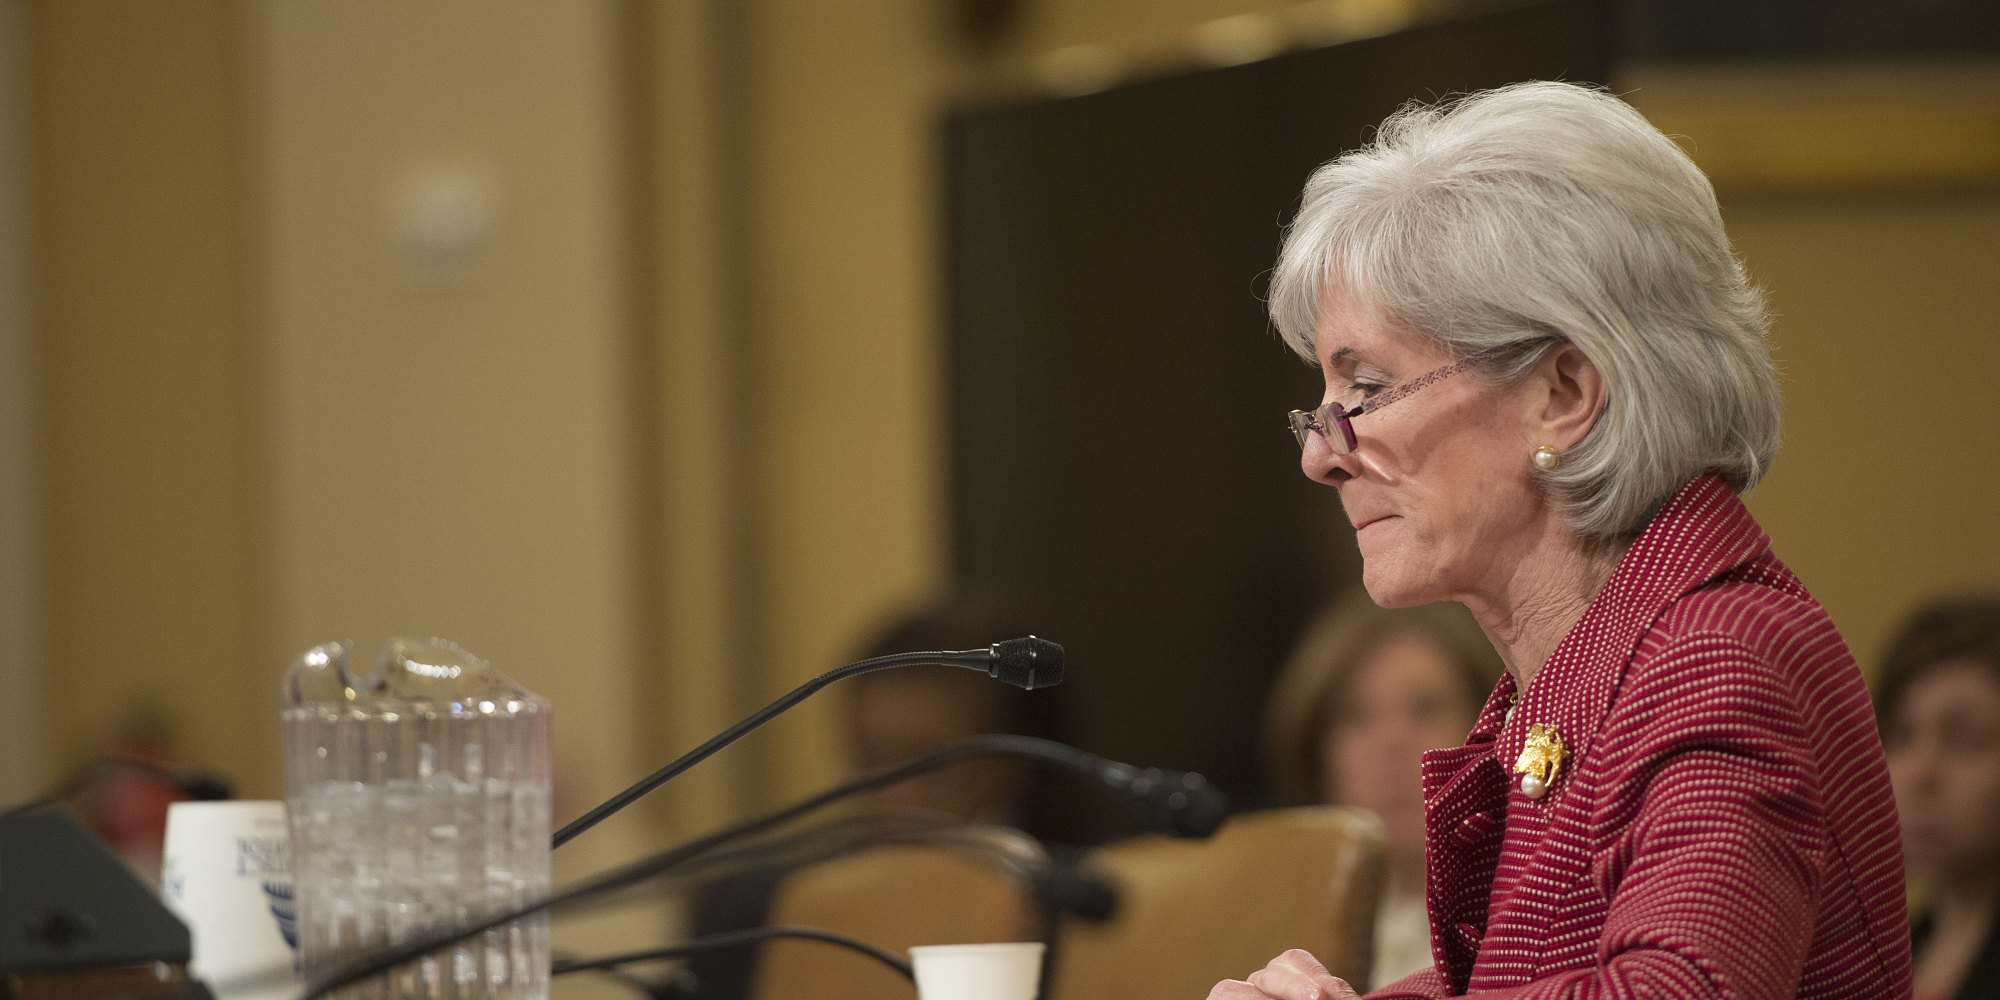 essay on kathleen sebelius This week, the first daughter of new york city traveled with her family to maryland, where ms de blasio received an award from outgoing health and human services secretary kathleen sebelius for writing an emotionally raw essay about her struggles.